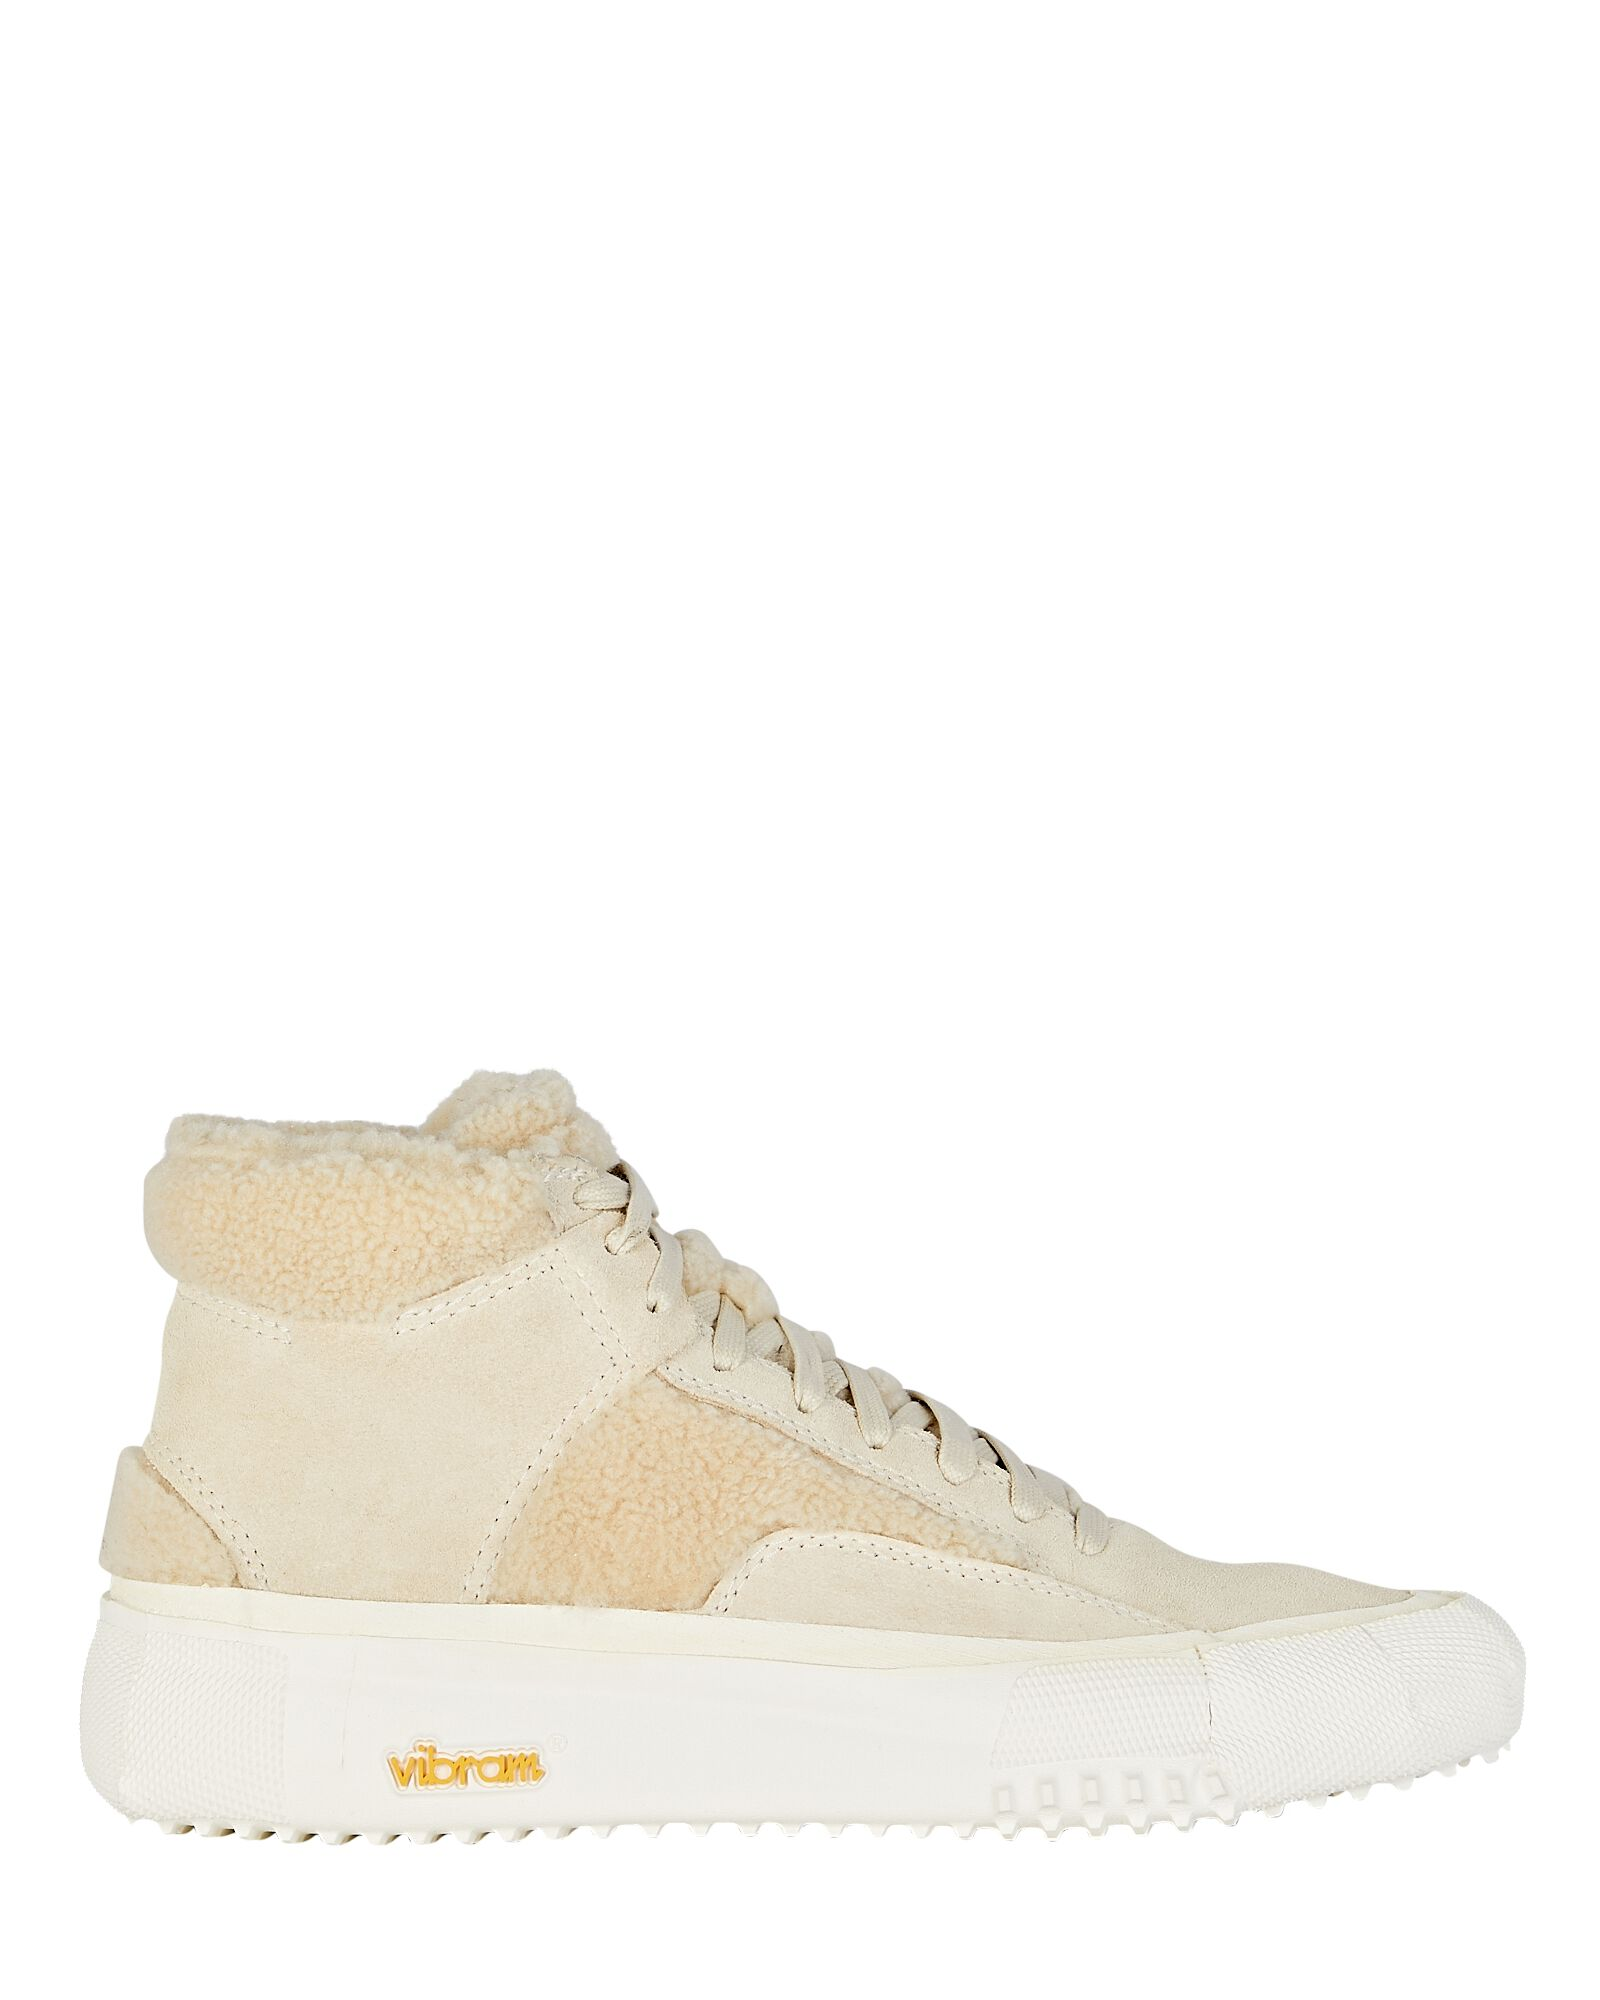 Capo Faux Shearling High-Top Sneakers, IVORY, hi-res